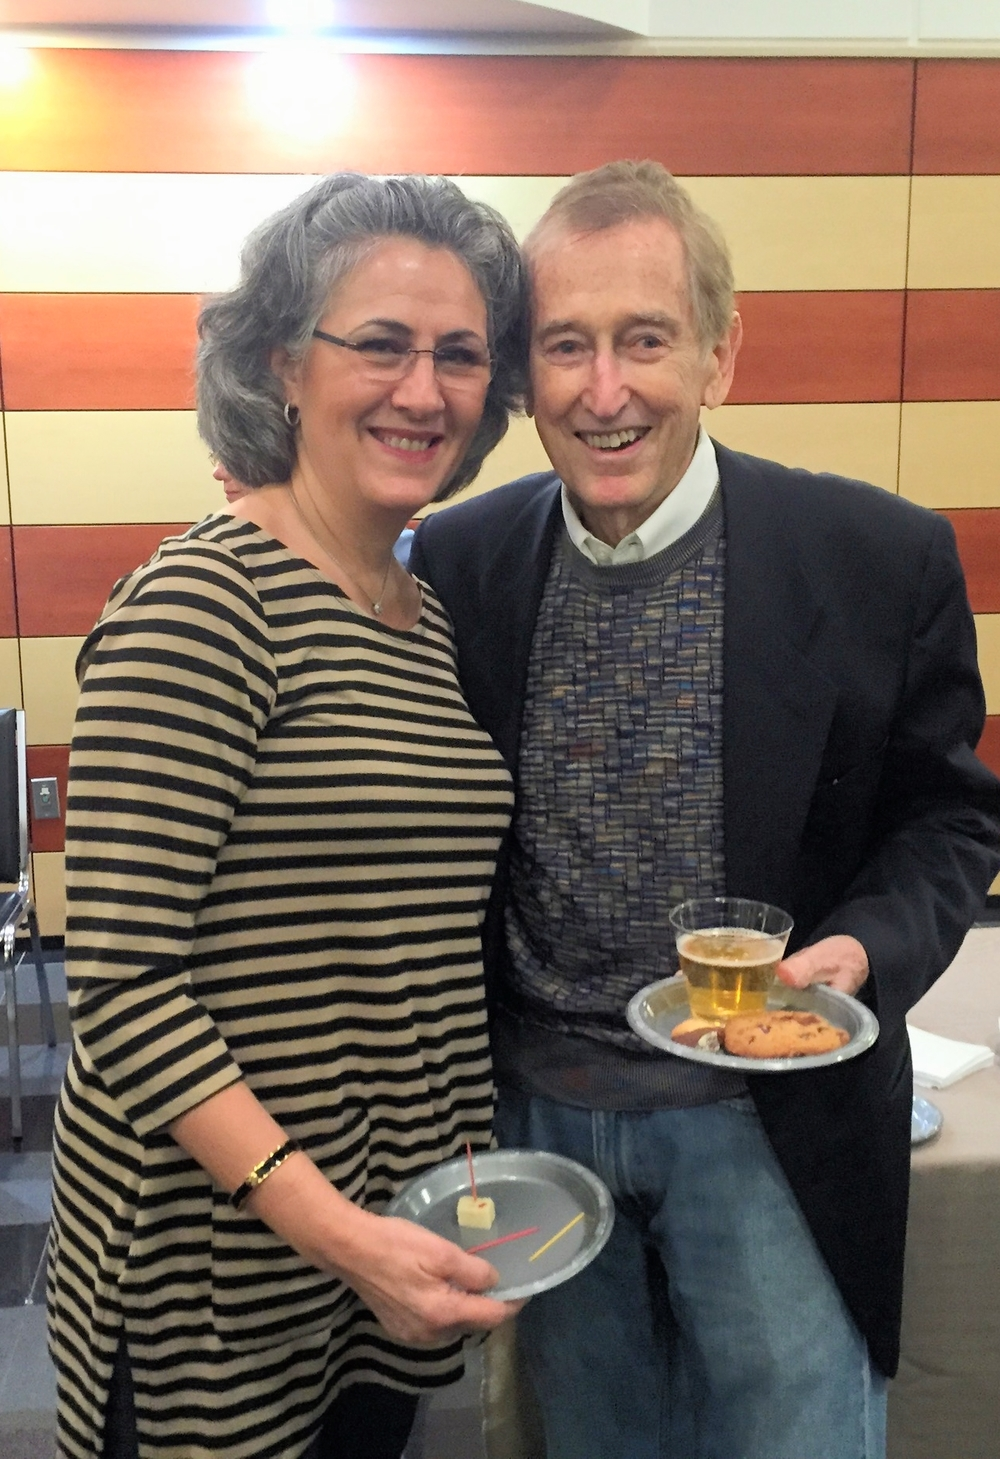 FLCC Director Robin Schamach with Advisory Board member Bob McGrath